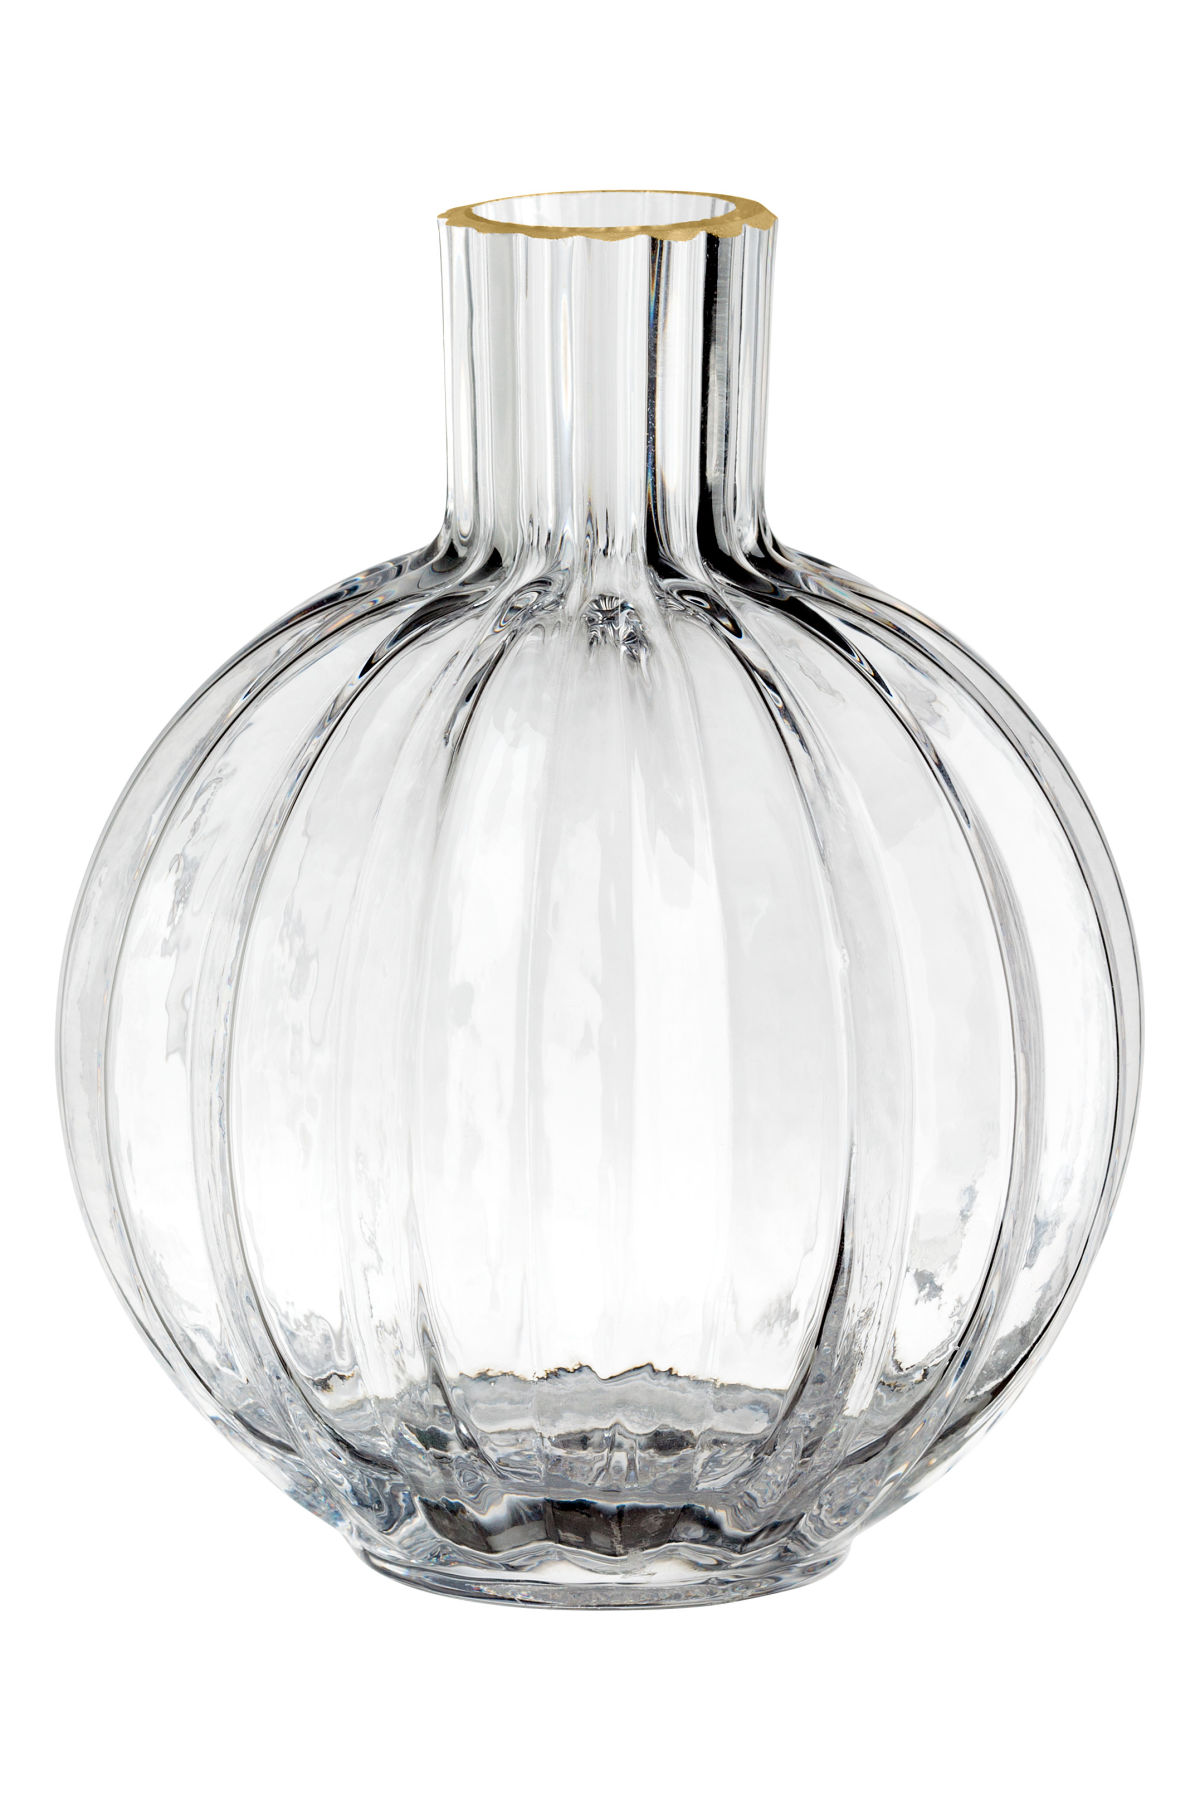 everyday glass clear happiness vase delivering studio pip floral